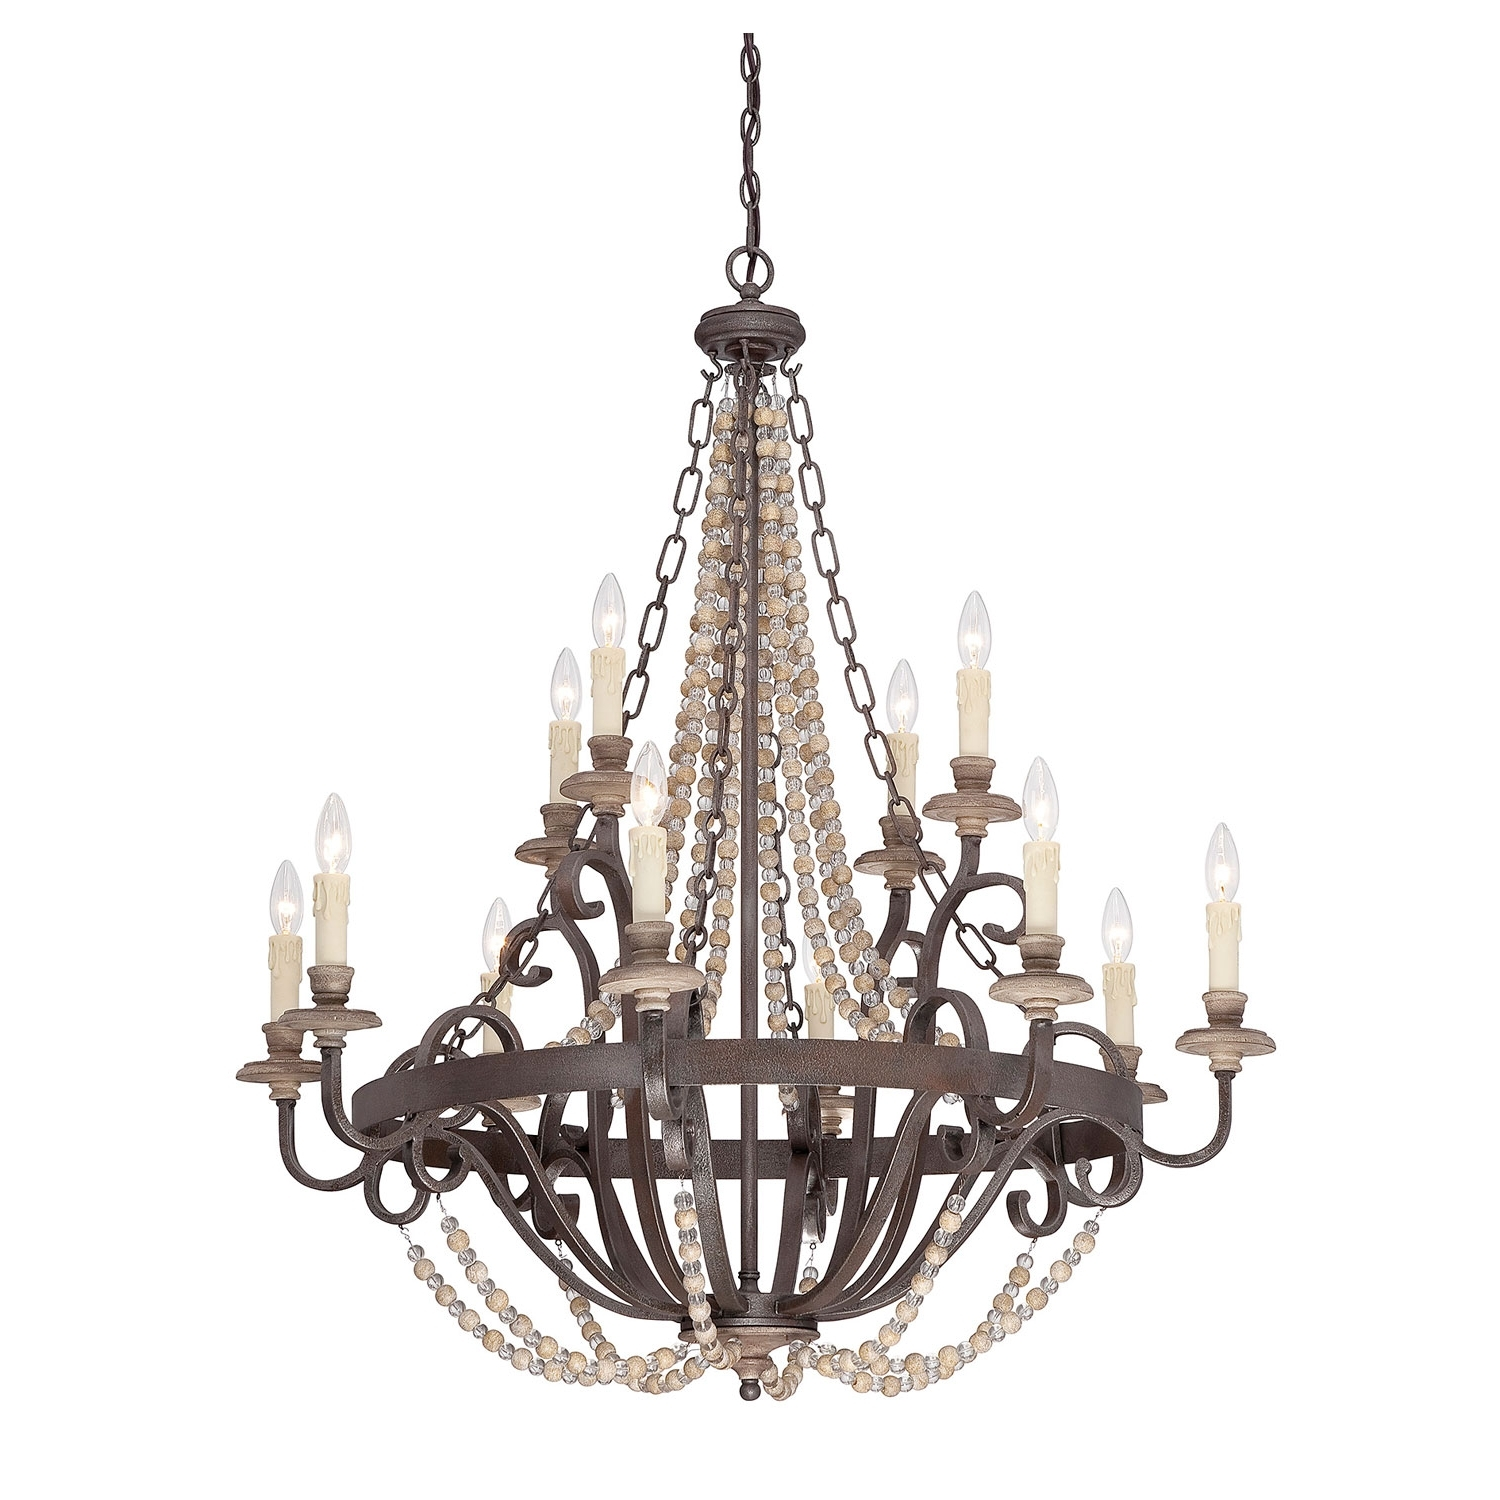 Light : Chandeliers Made In Usa Crystal Modern Iron Shabby Chic Pertaining To 2018 Country Chic Chandelier (View 9 of 15)